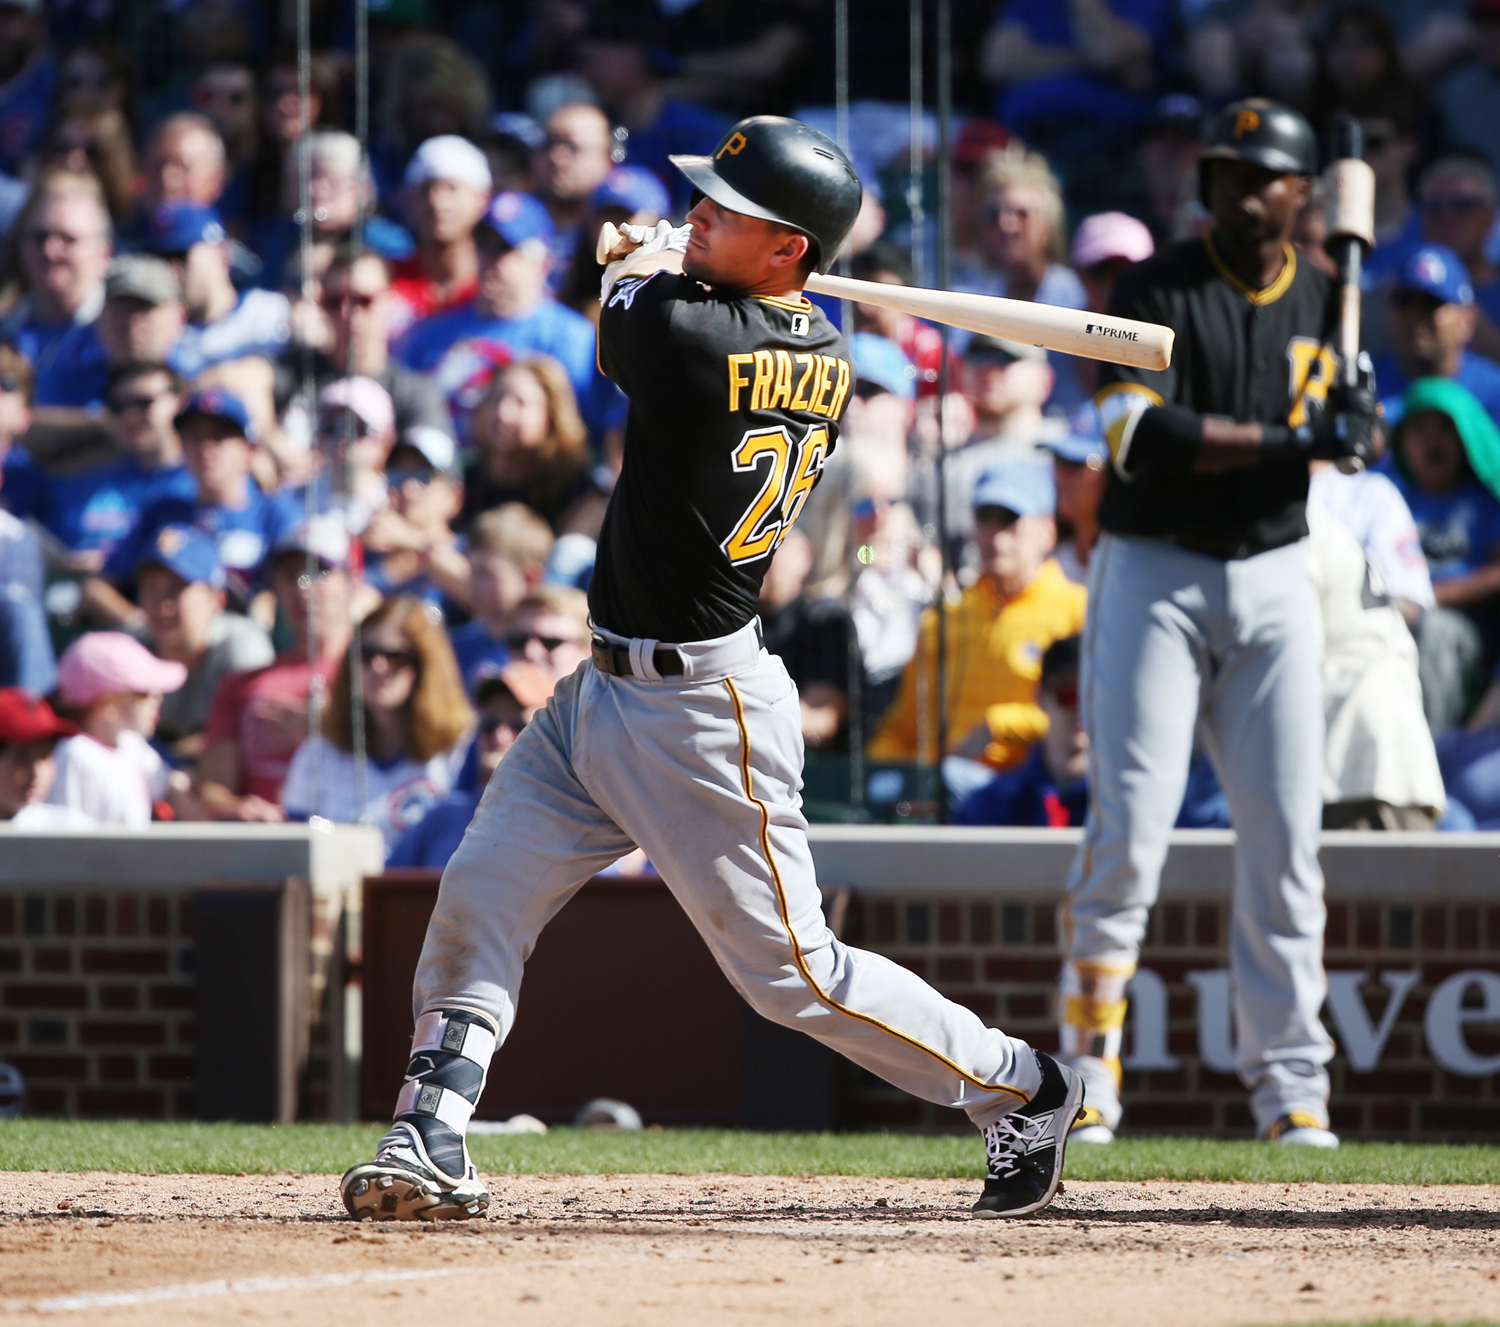 Pittsburgh Pirates left fielder Adam Frazier (26) watches the flight of his three-run home run against the Chicago Cubs during the ninth inning on April 16, 2017, at Wrigley Field in Chicago.